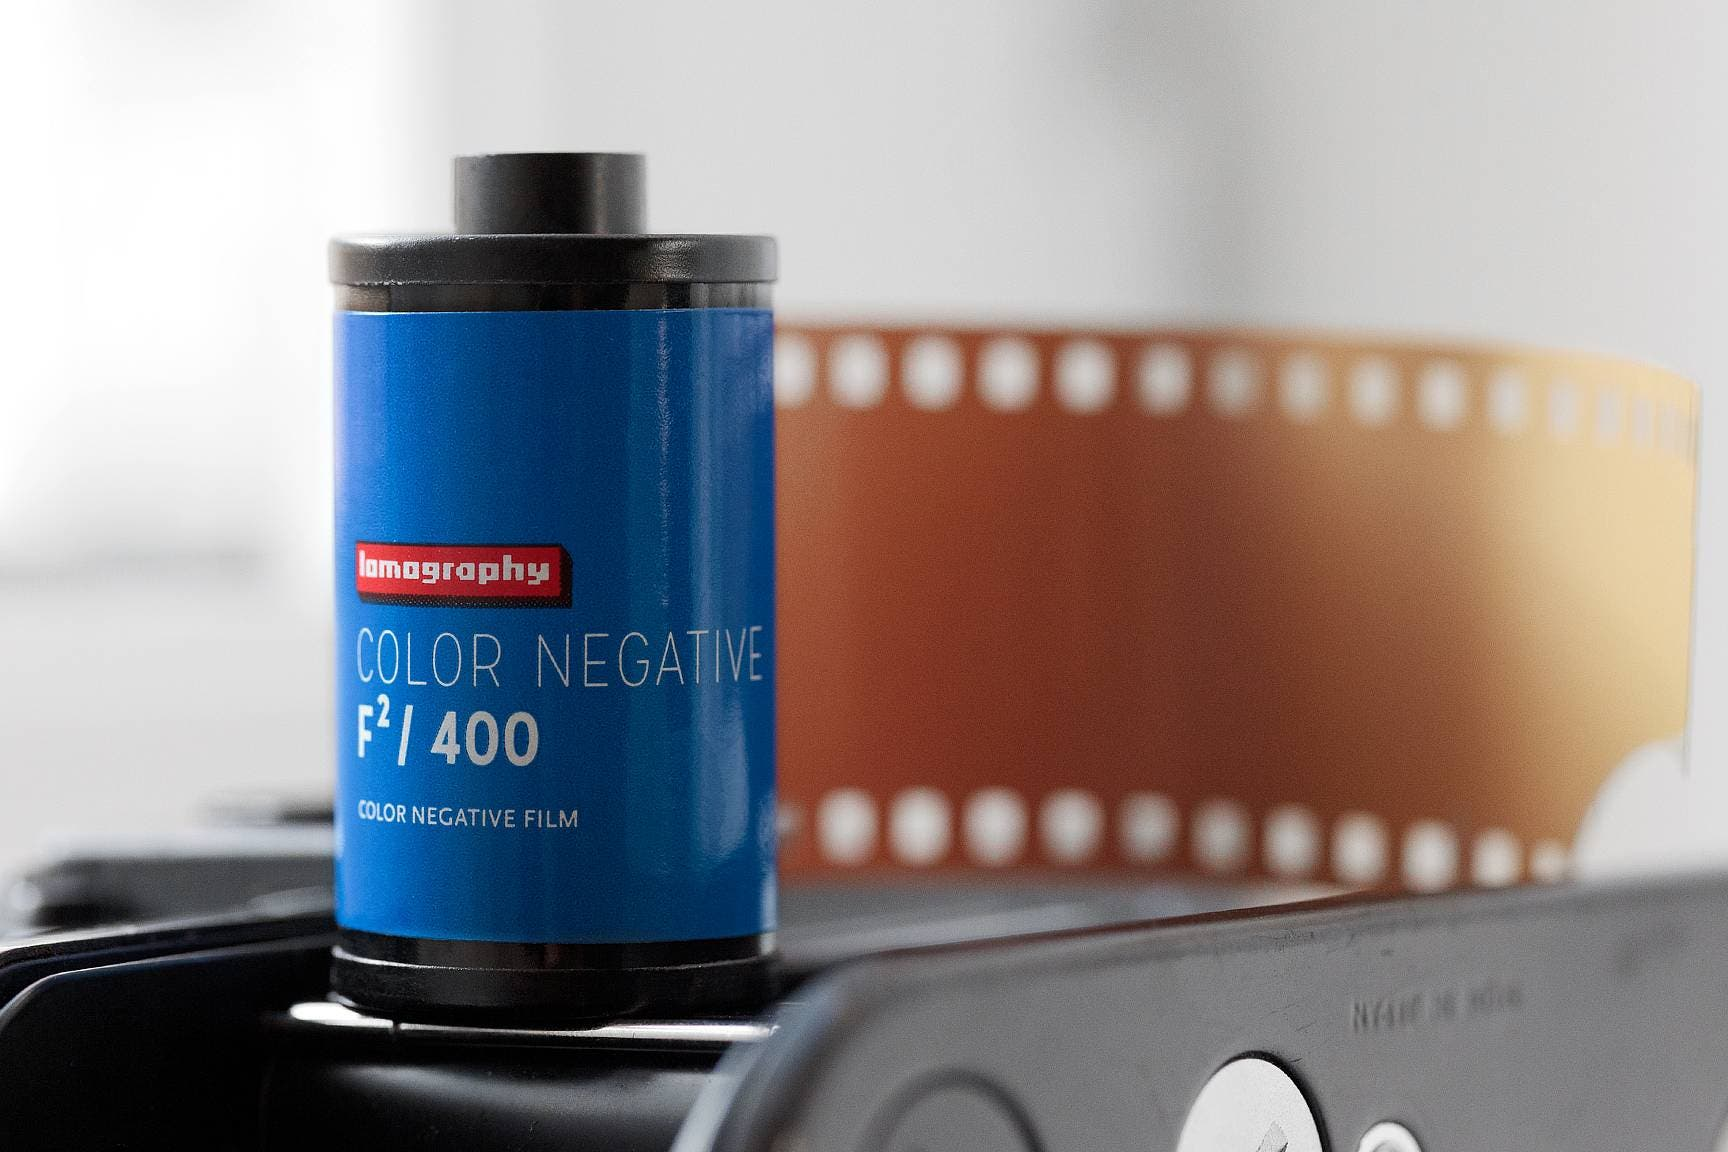 The New Lomography Color Negative F²/400 Film Is the Result of a Crazy Experiment